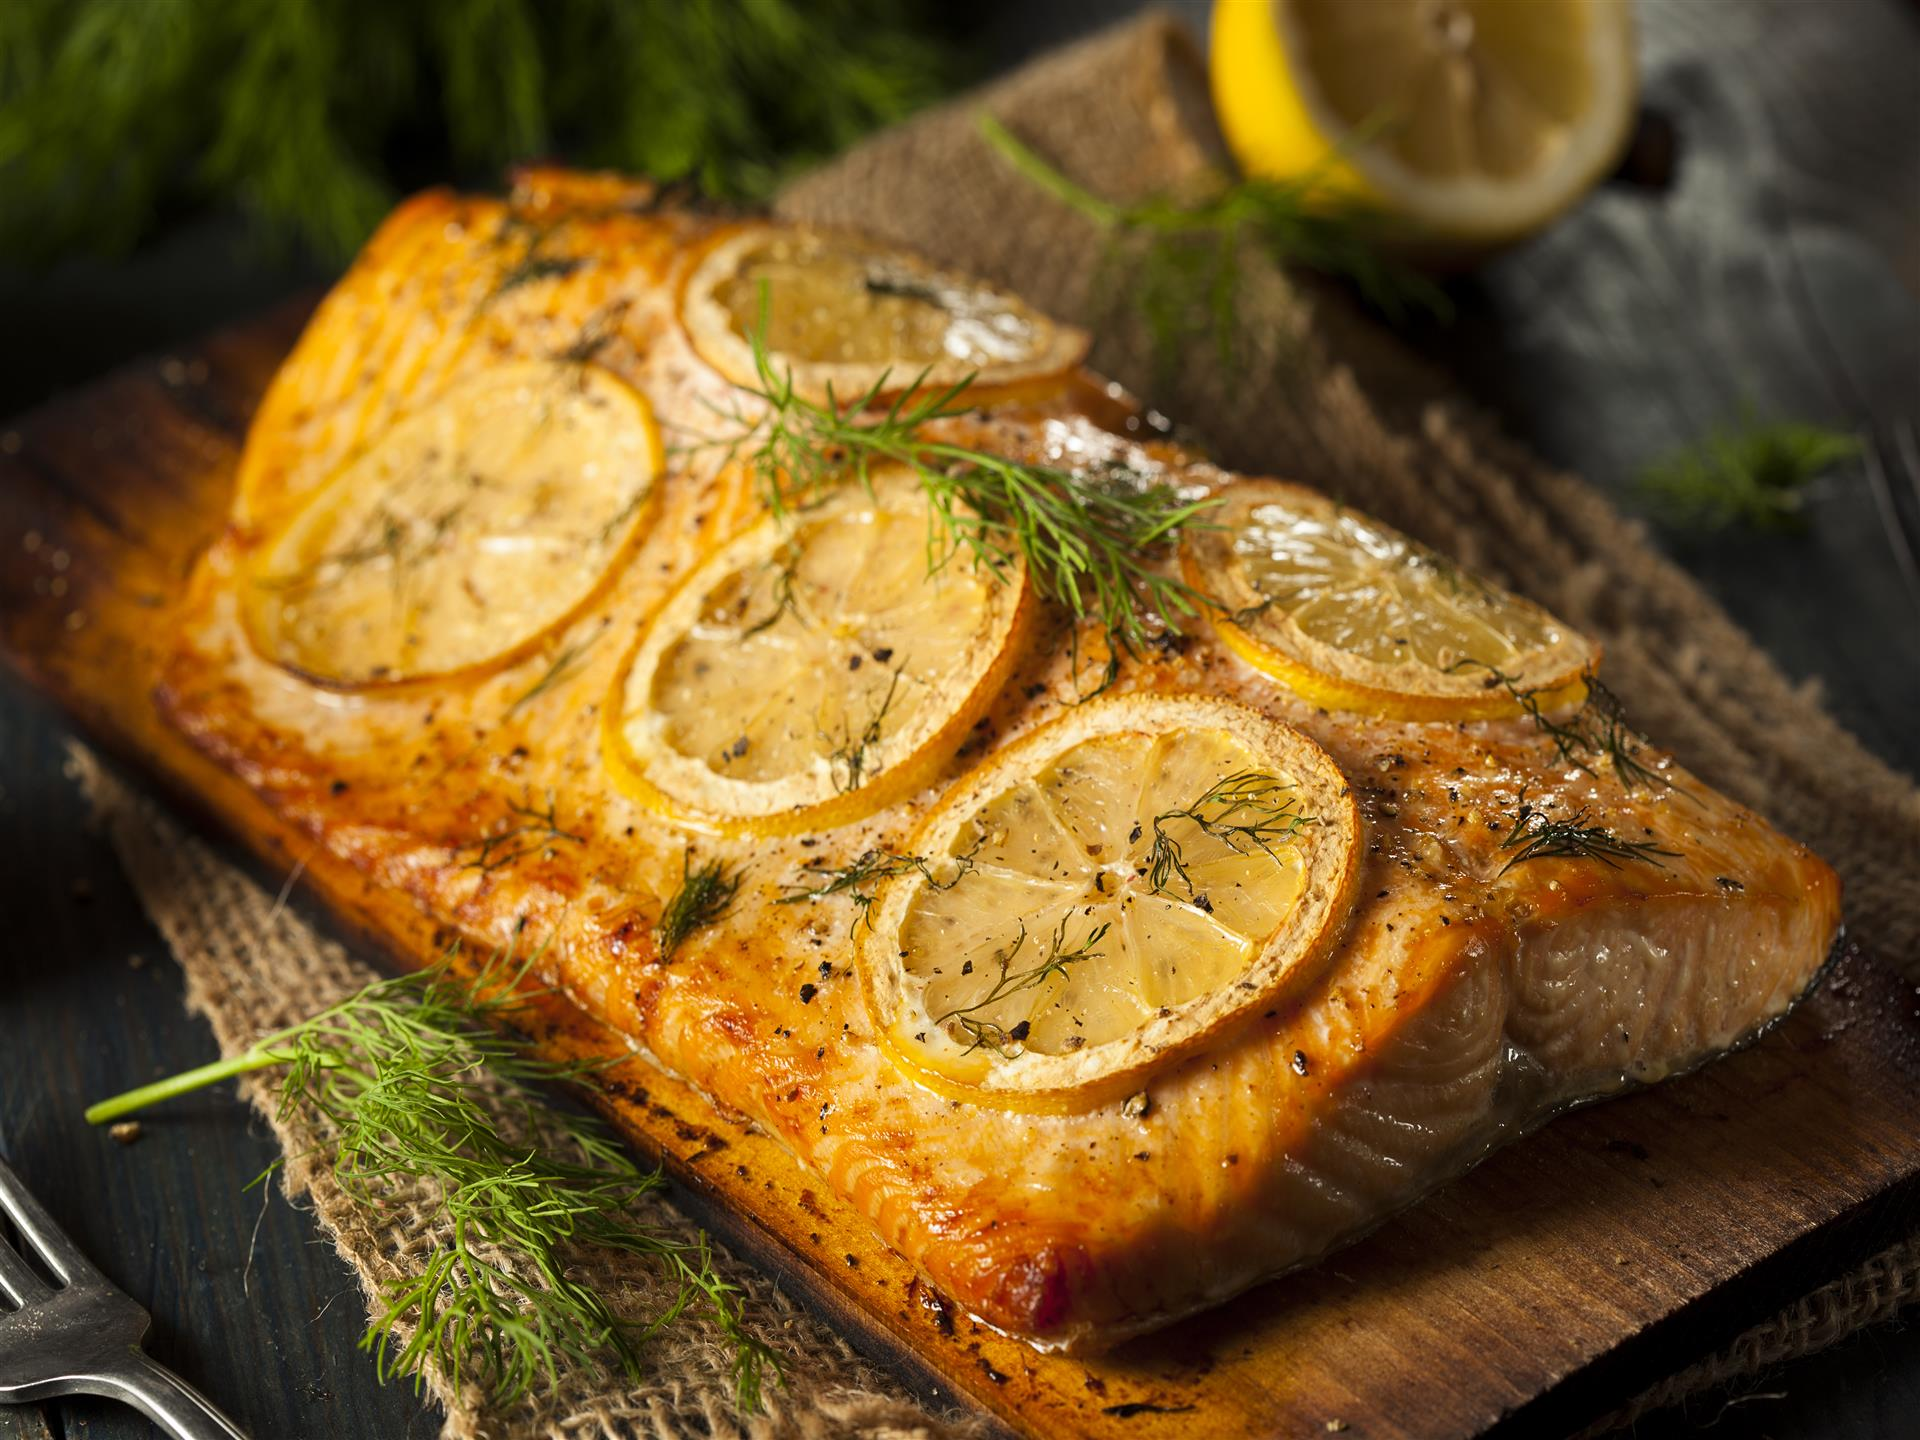 Salmon with lemon on cedar plank.